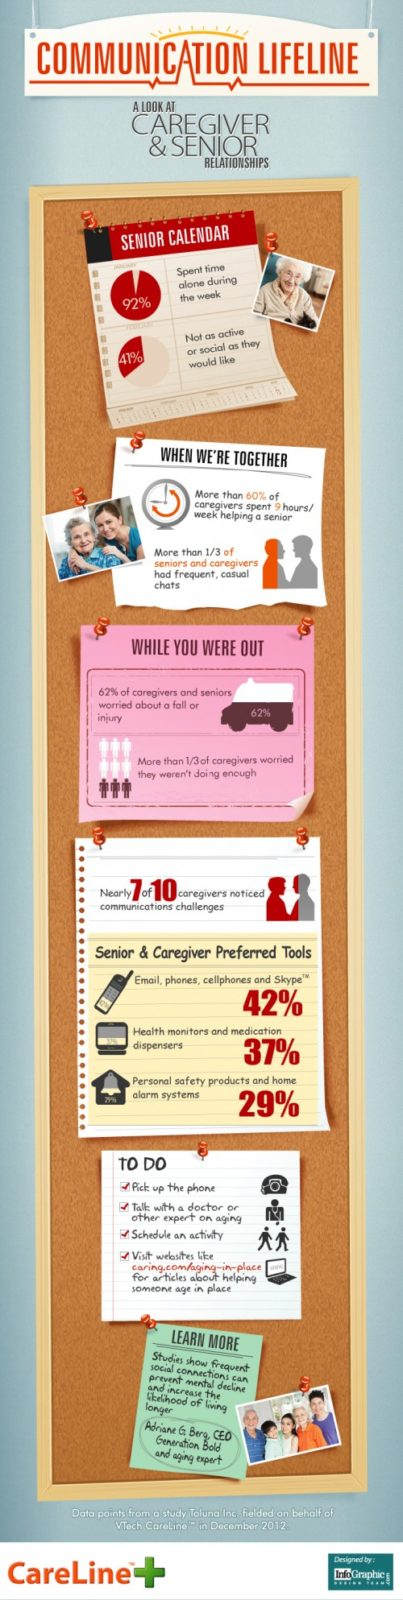 CareLine infographic FINAL